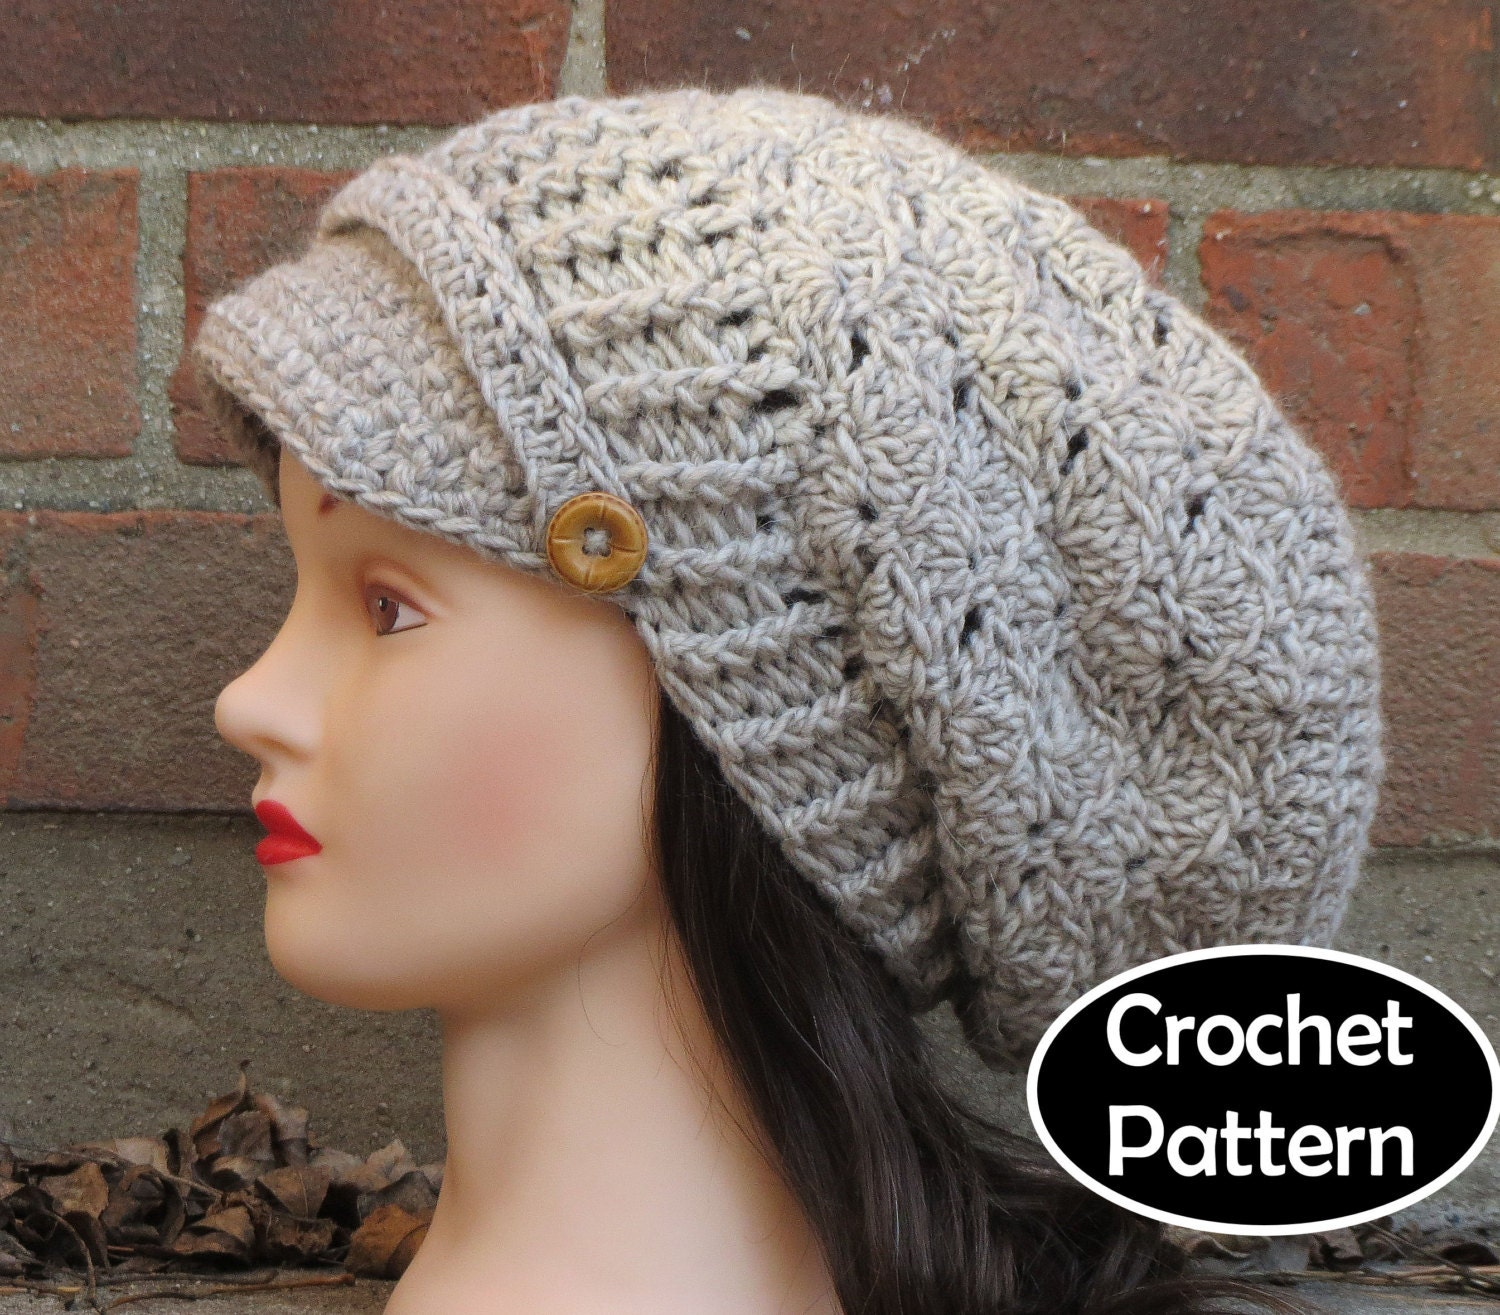 Crochet Hat Pattern Download : CROCHET HAT PATTERN Instant Download Pdf Hallie by ...